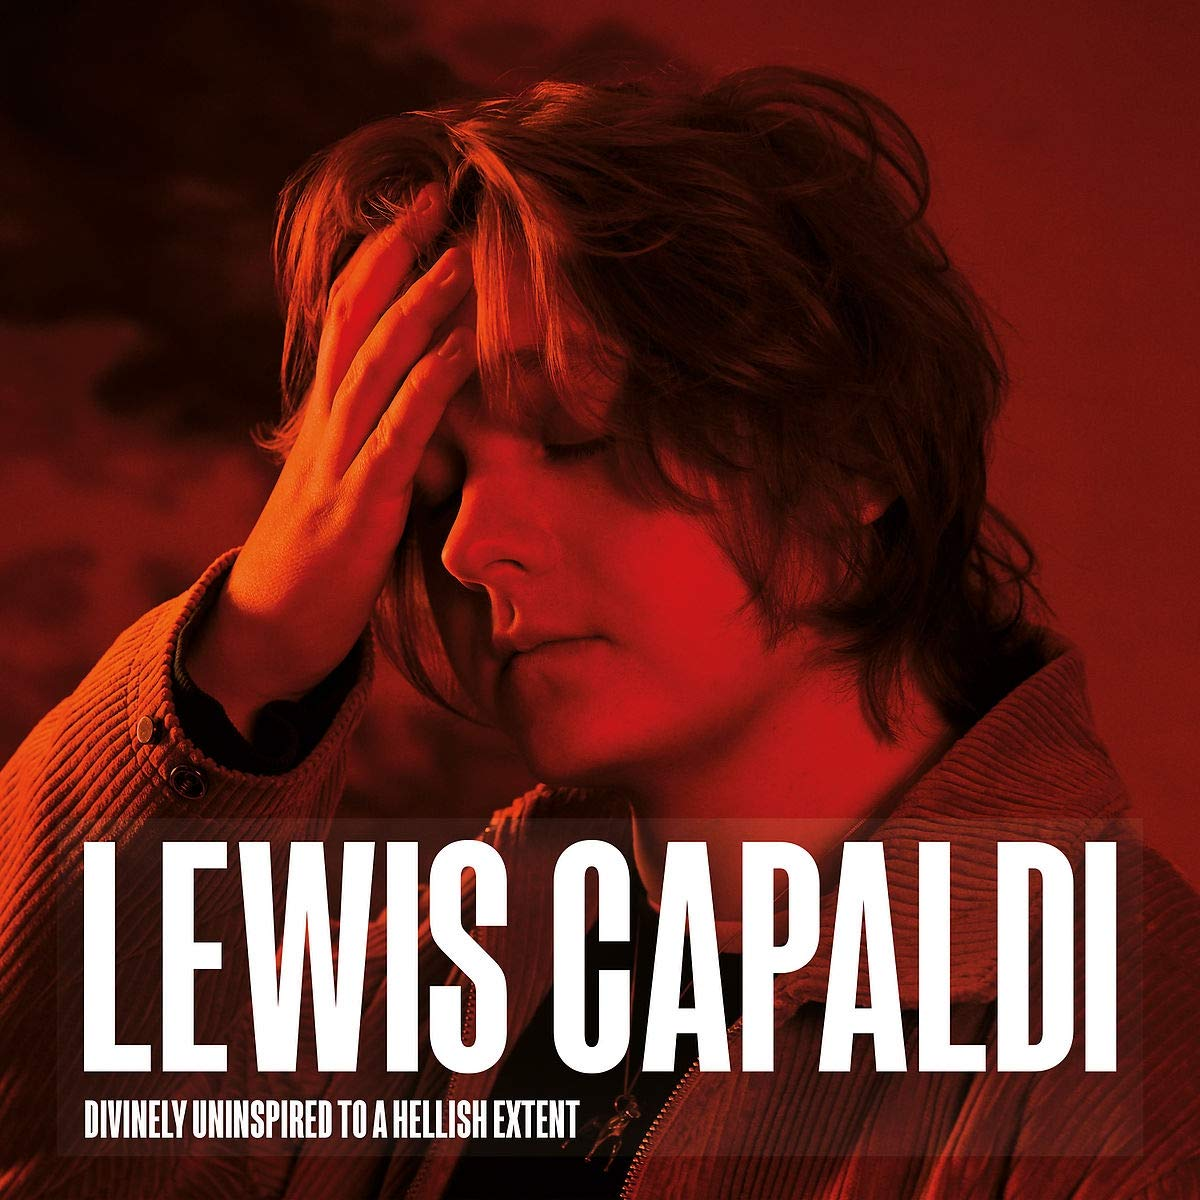 Lewis Capaldi - Divinely Uninspired To A Hellish Extent (2019) [FLAC] Download